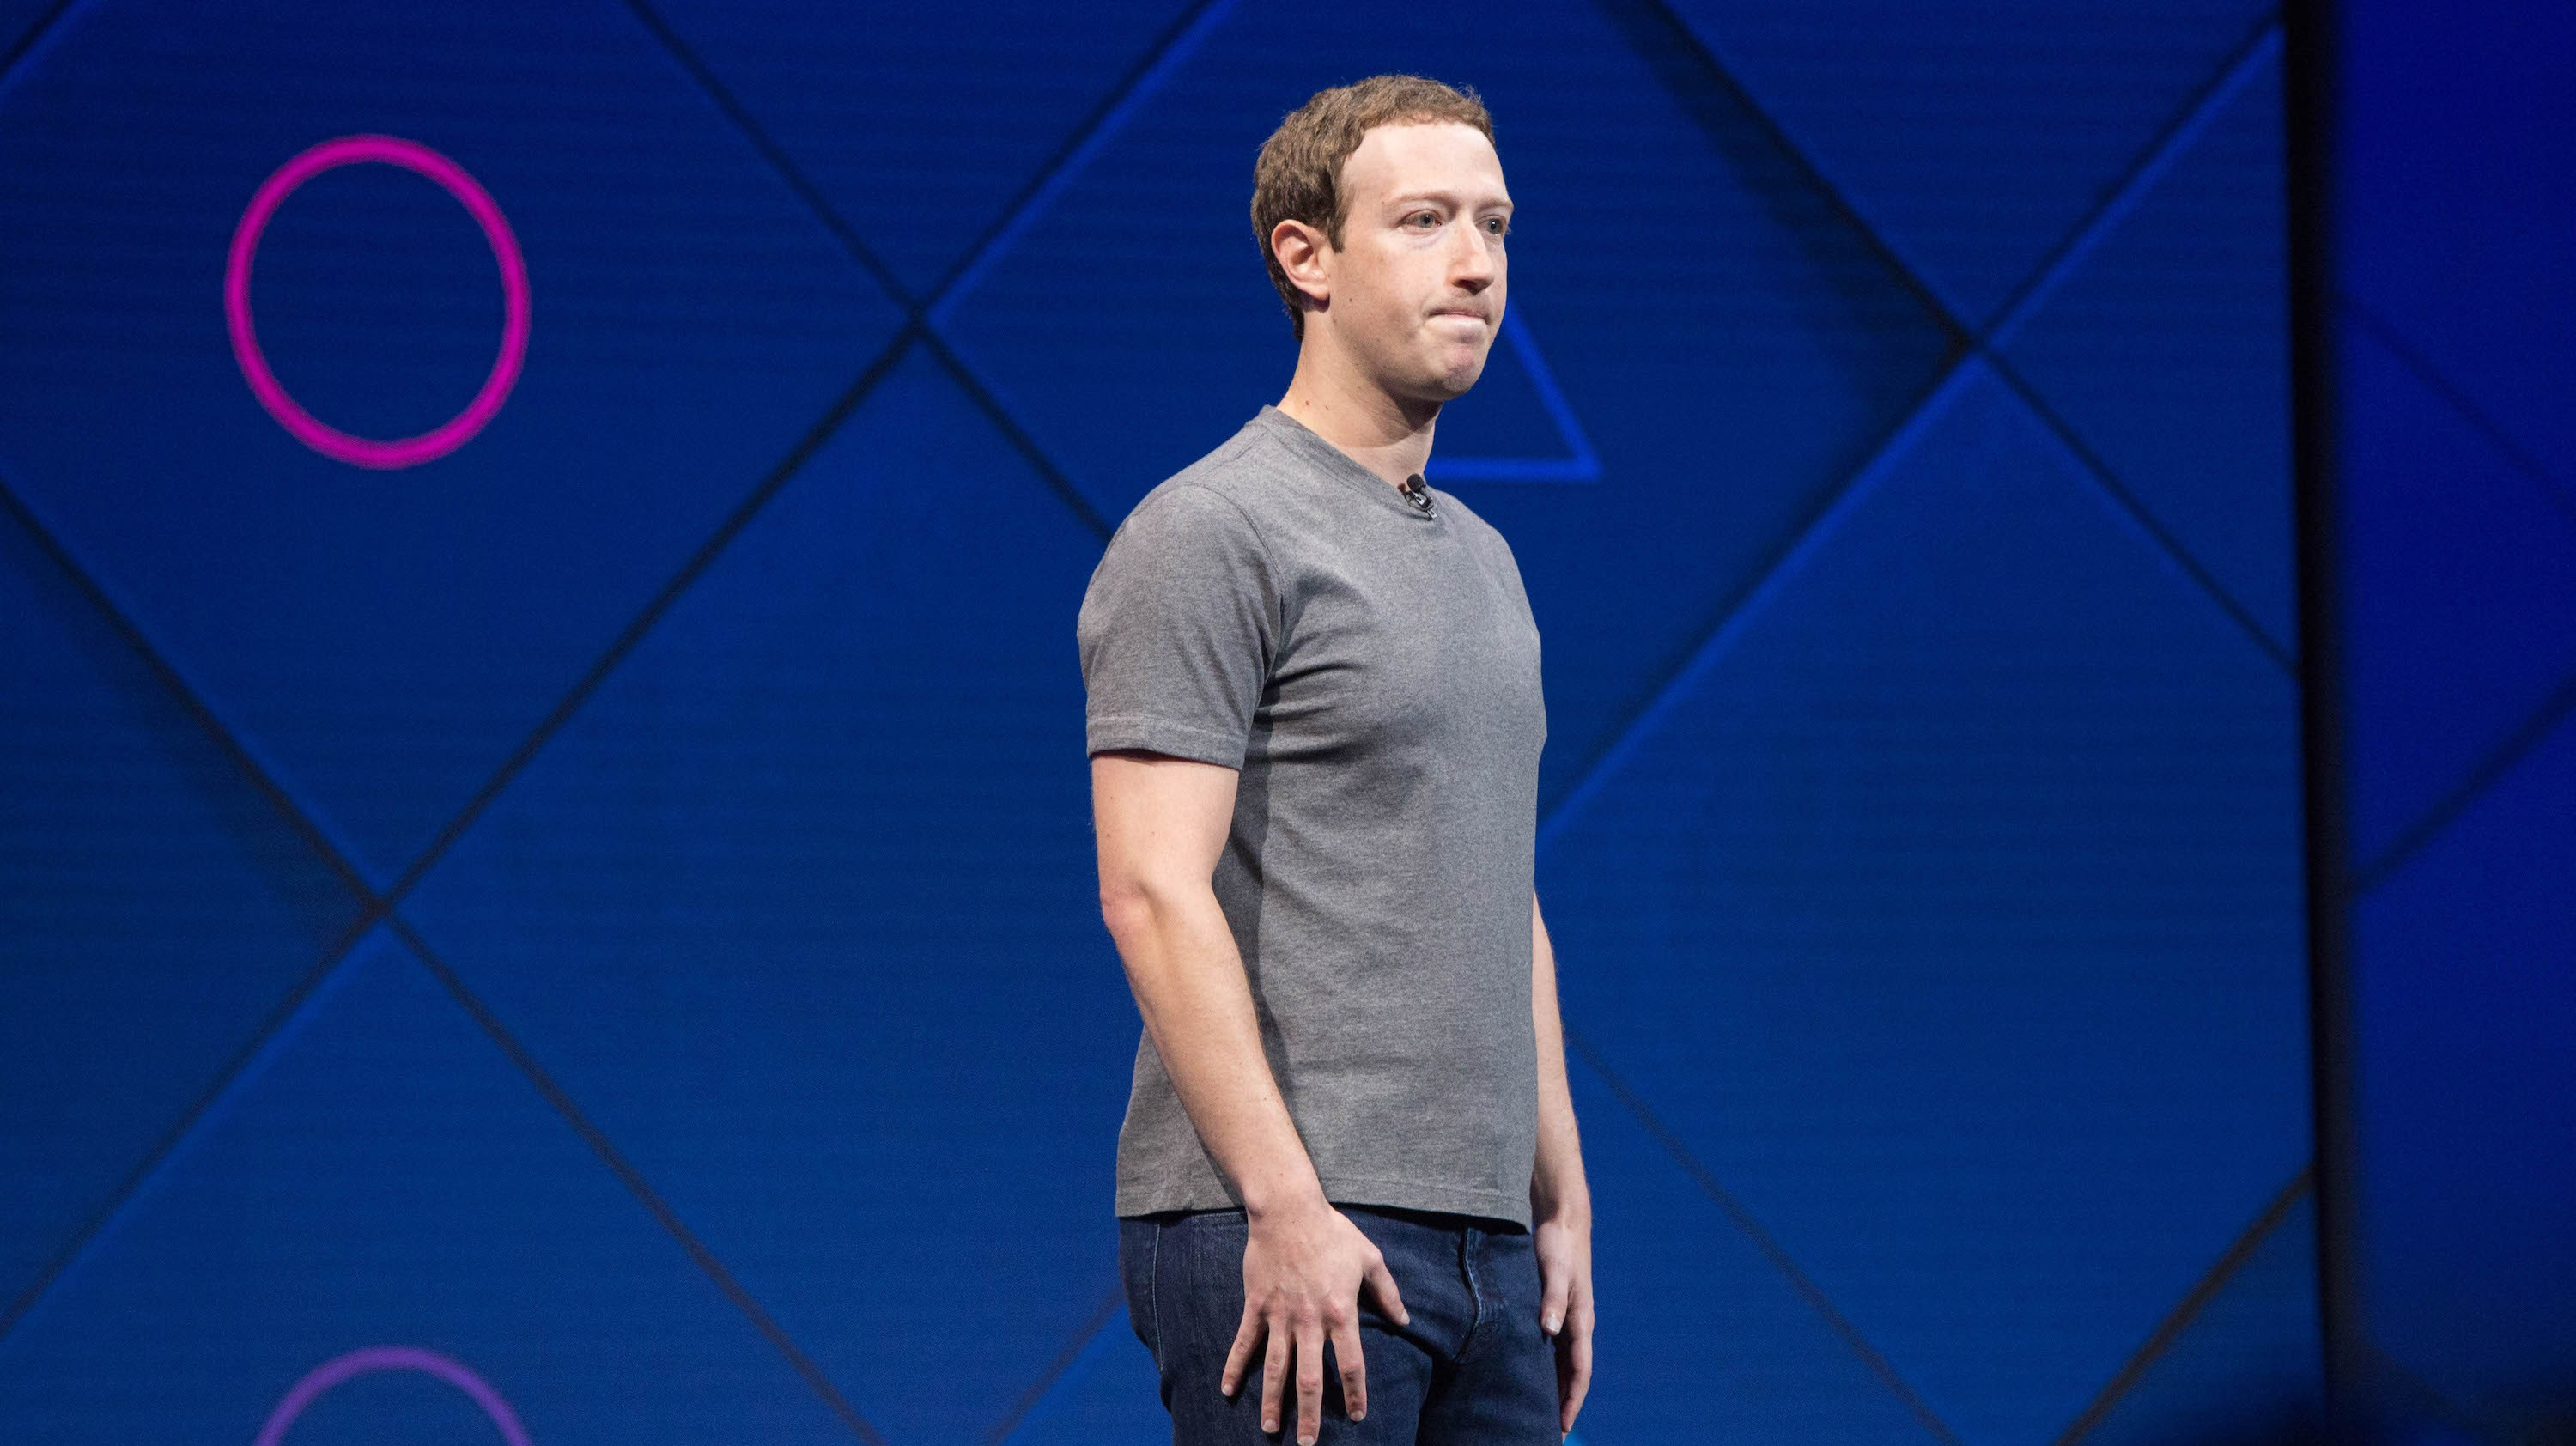 Why We're Not Calling the Cambridge Analytica Story a 'Data Breach' Facebook insists that Cambridge Analytica didn't get information on 50 million Americans because of a 'data breach.' It's right. What really happened is much worse.